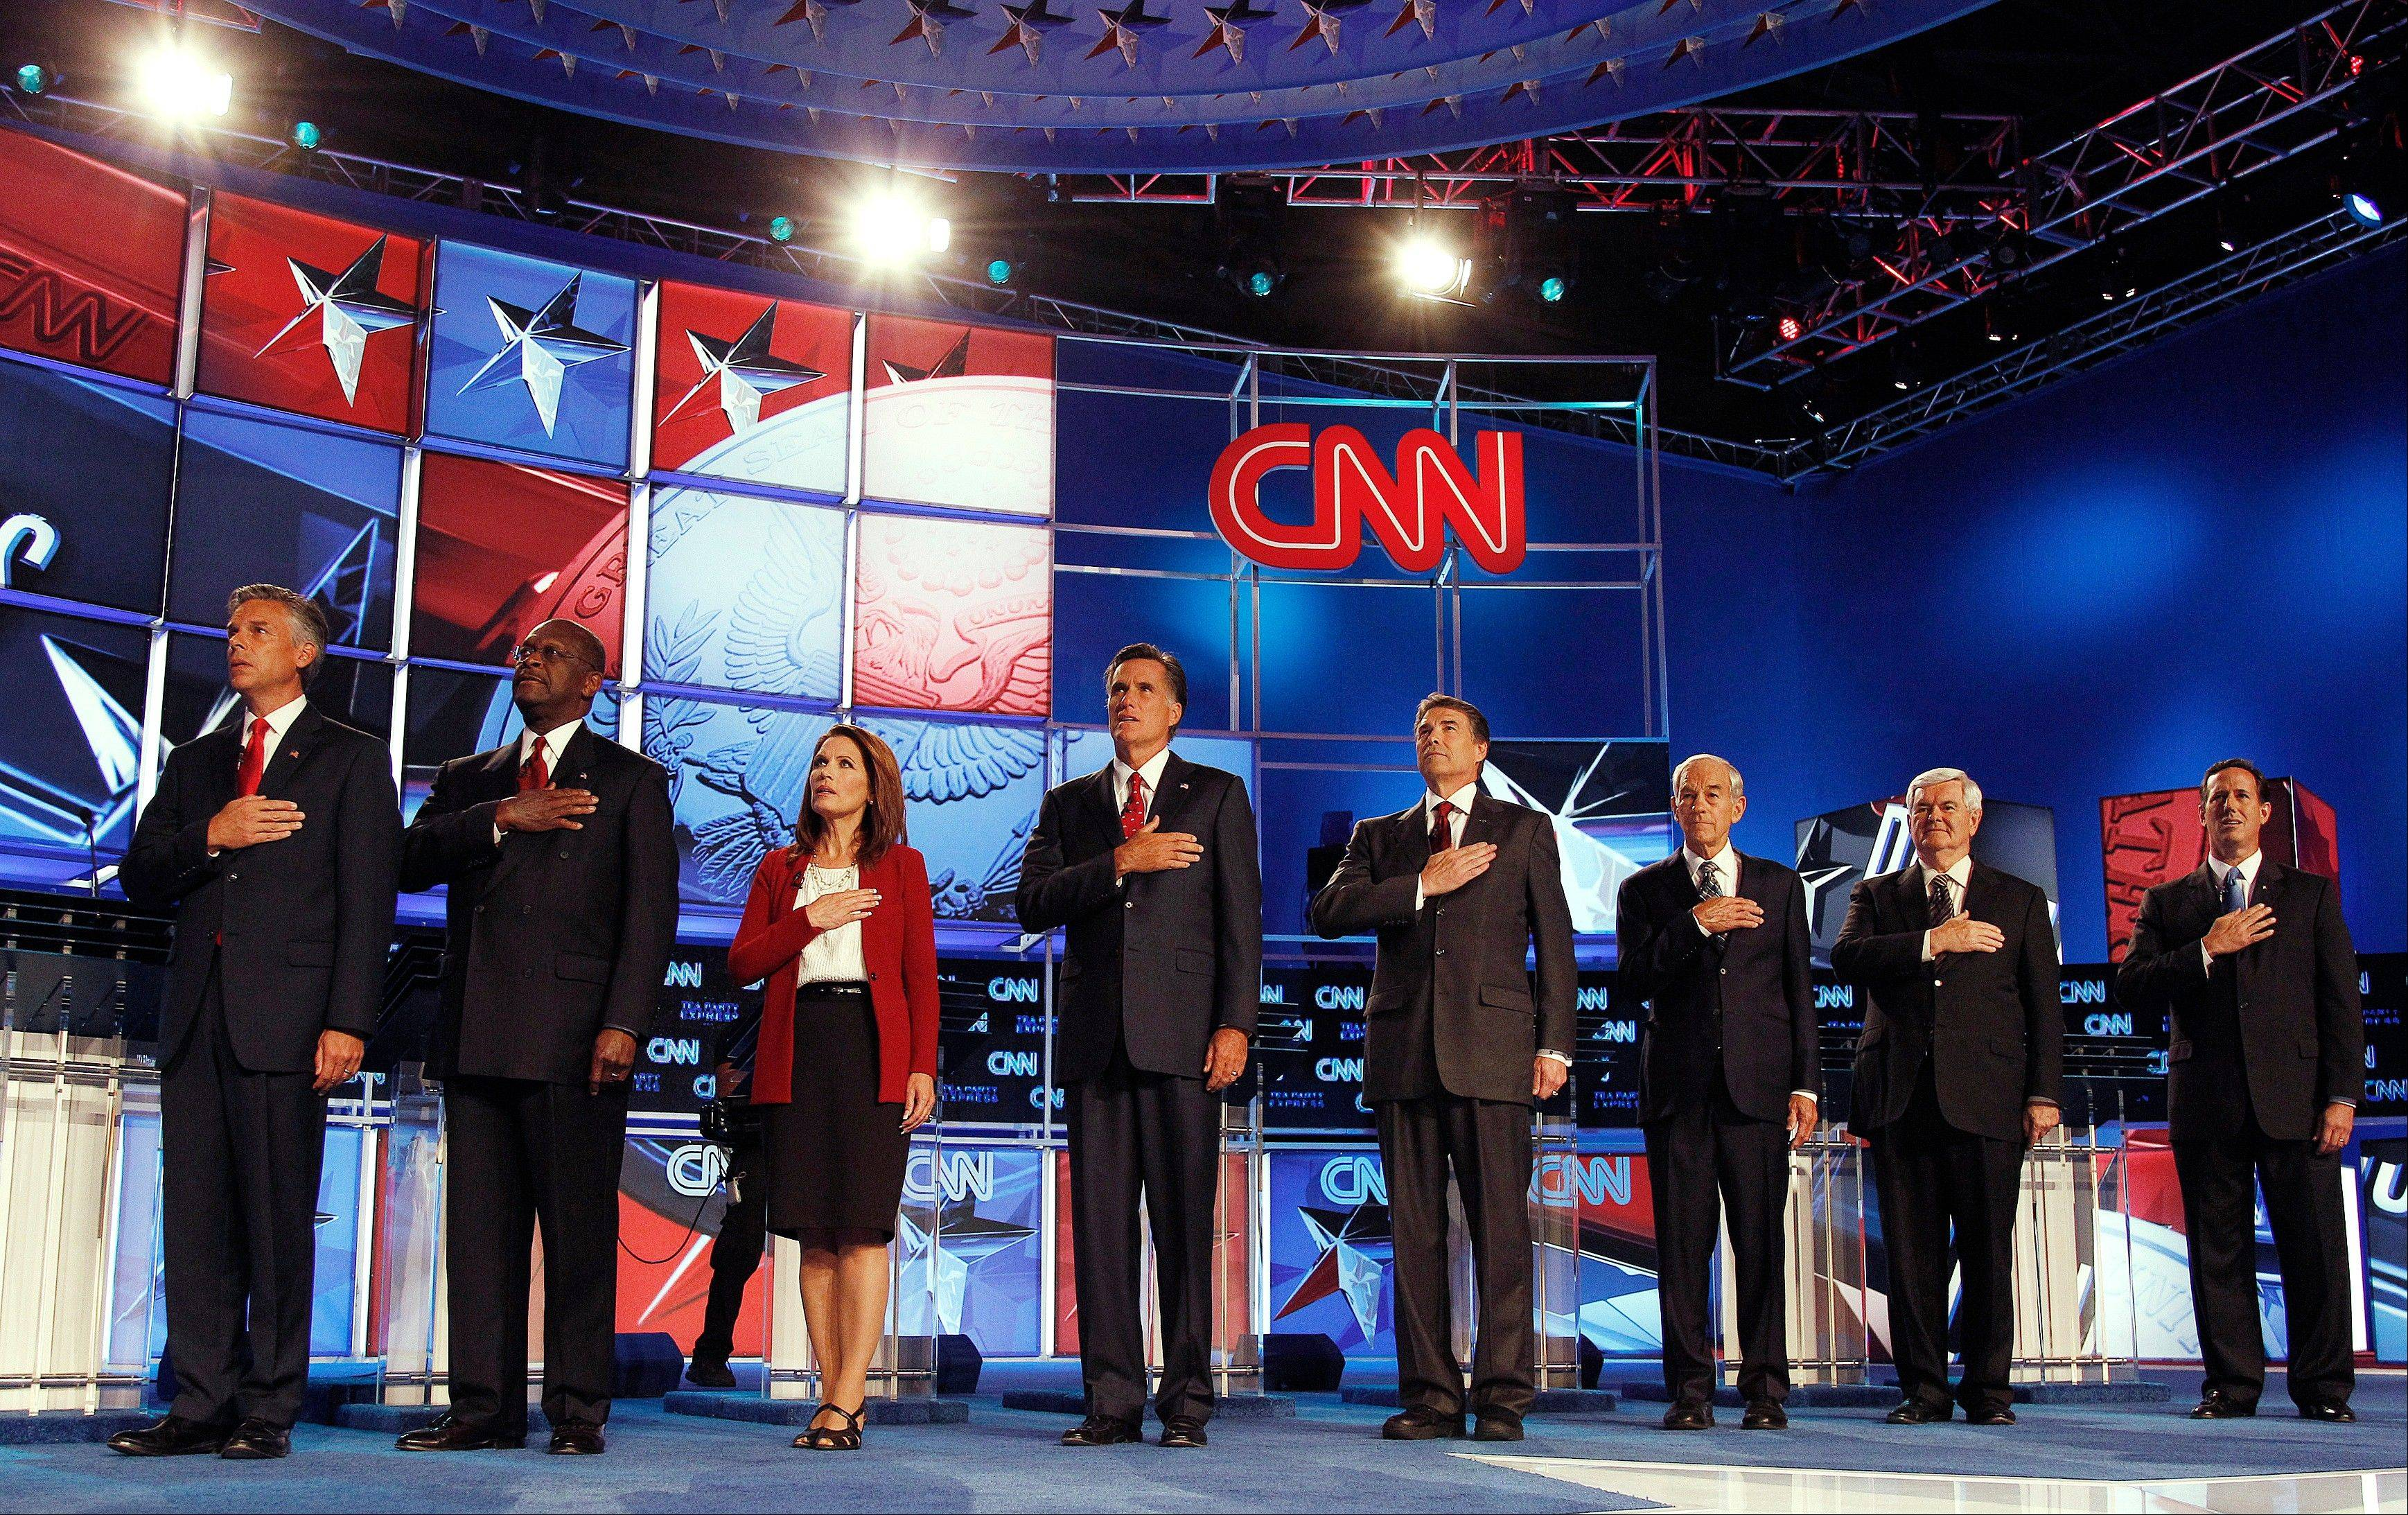 Republican presidential candidates, from left, Utah Gov. Jon Huntsman, businessman Herman Cain, Rep. Michele Bachmann, R-Minn., former Massachusetts Gov. Mitt Romney, Texas Gov. Rick Perry, Rep. Ron Paul, R-Texas, former House Speaker Newt Gingrich, and former Pennsylvania Sen. Rick Santorum, sing the national anthem before a Republican presidential debate Monday, Sept. 12, 2011, in Tampa, Fla.